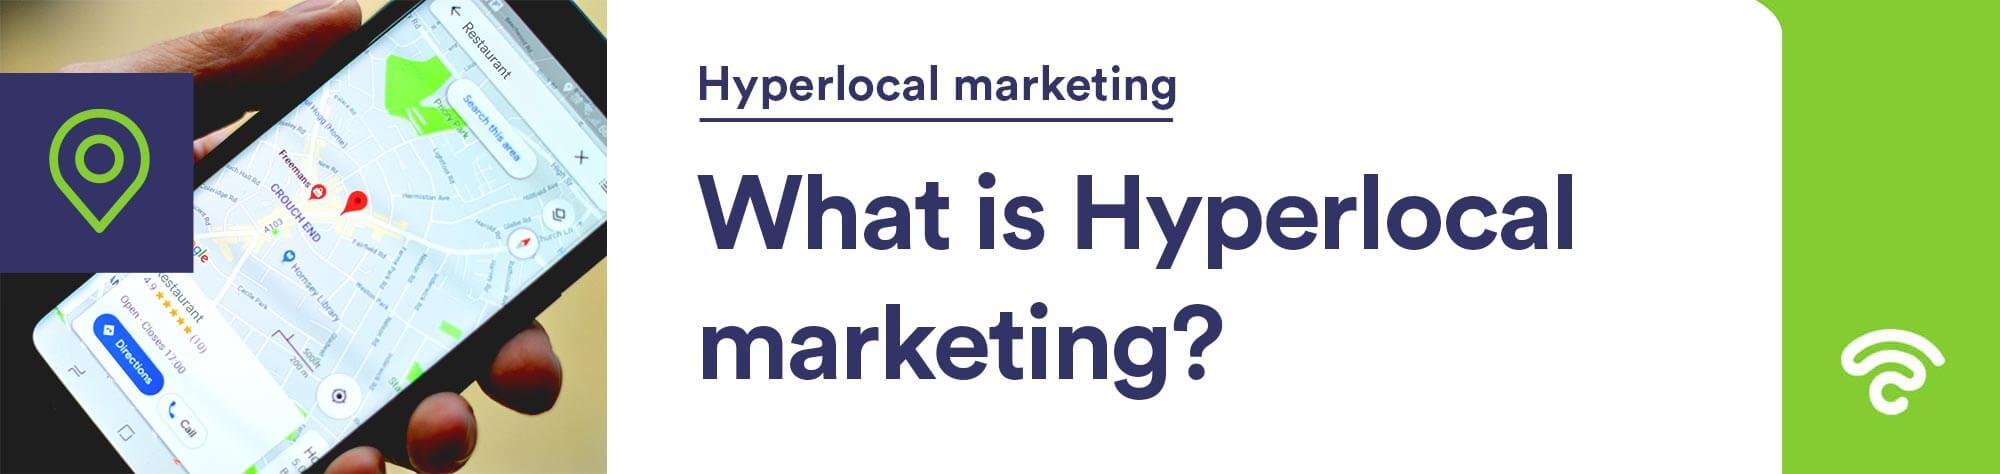 what is hyperlocal marketing